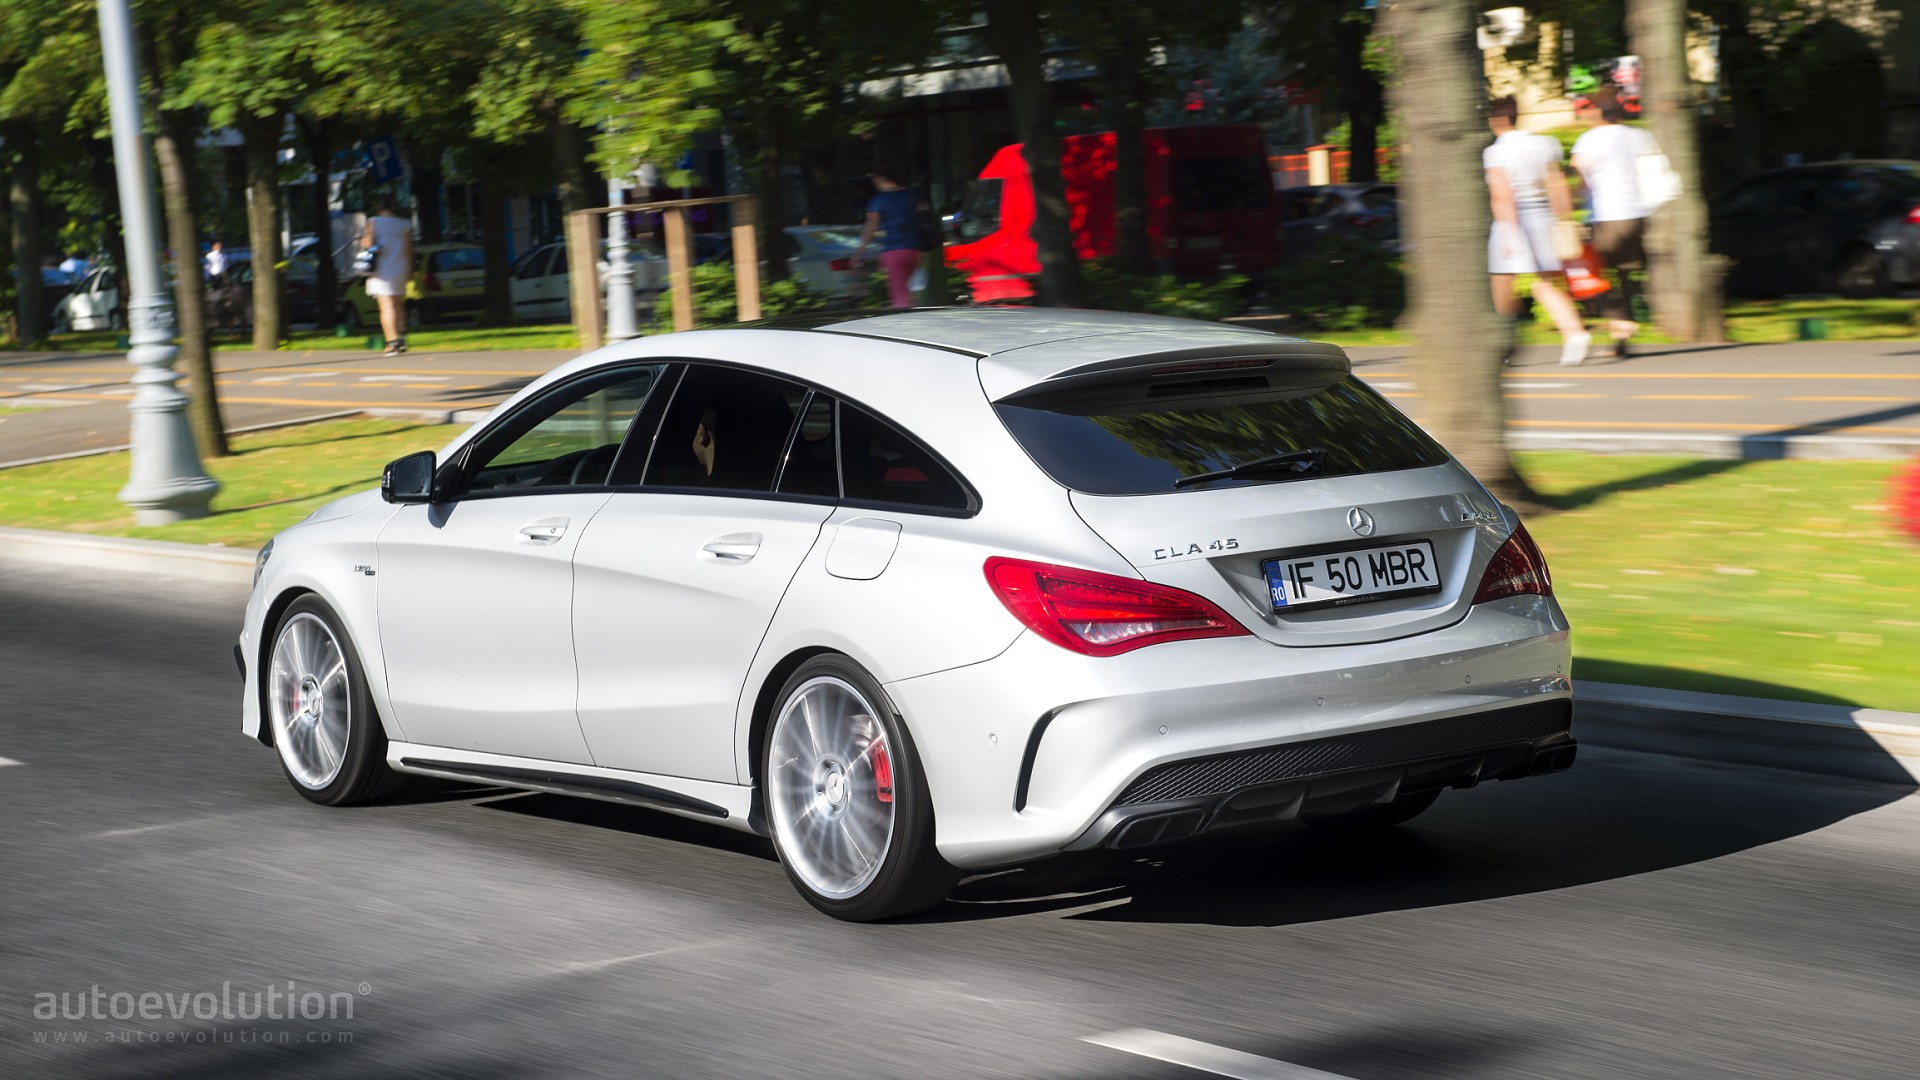 Cla Shooting Brake Review >> 2016 Mercedes-Benz CLA45 AMG Shooting Brake Review - autoevolution